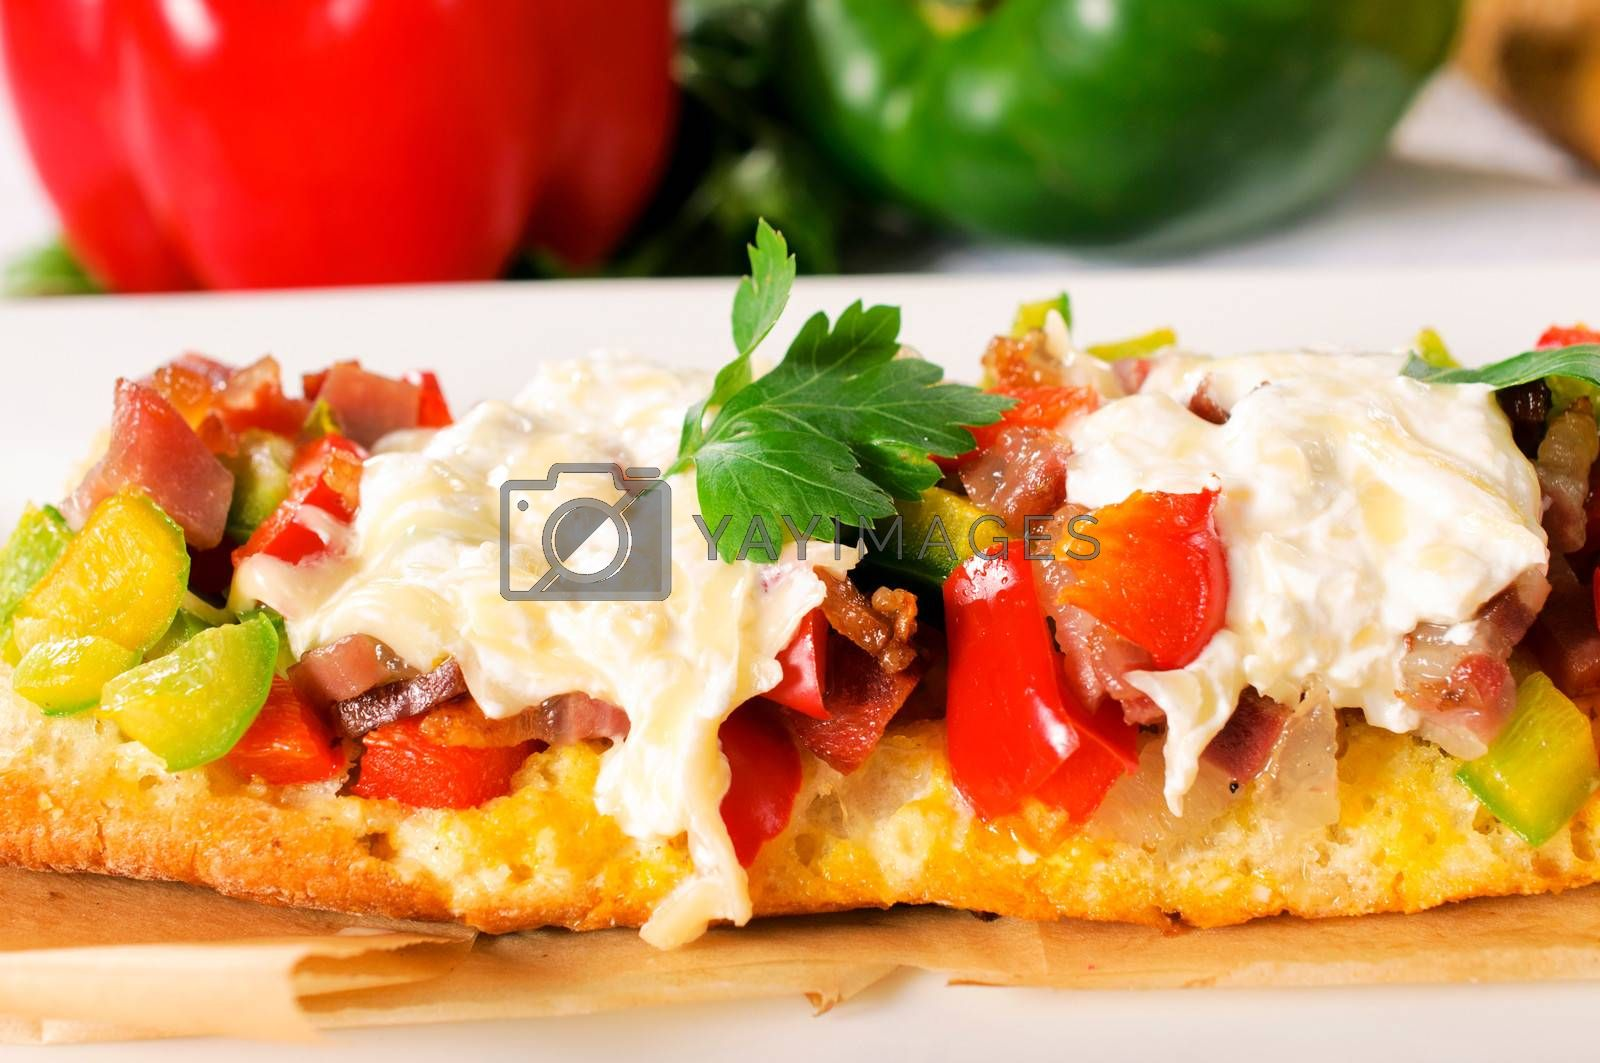 Baguette bread stuffed with meat and peppers.Selective focus in the middle